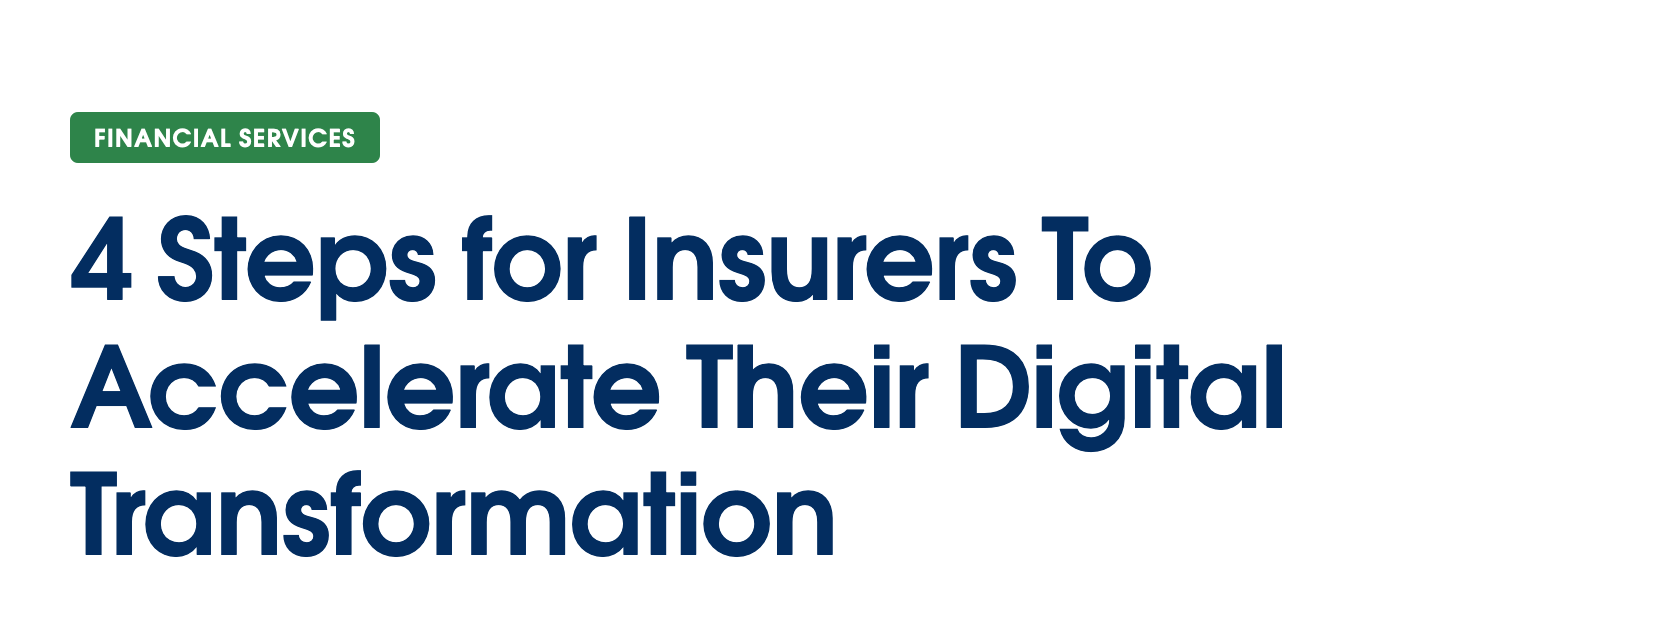 4 Steps for Insurers To Accelerate Their Digital Transformation